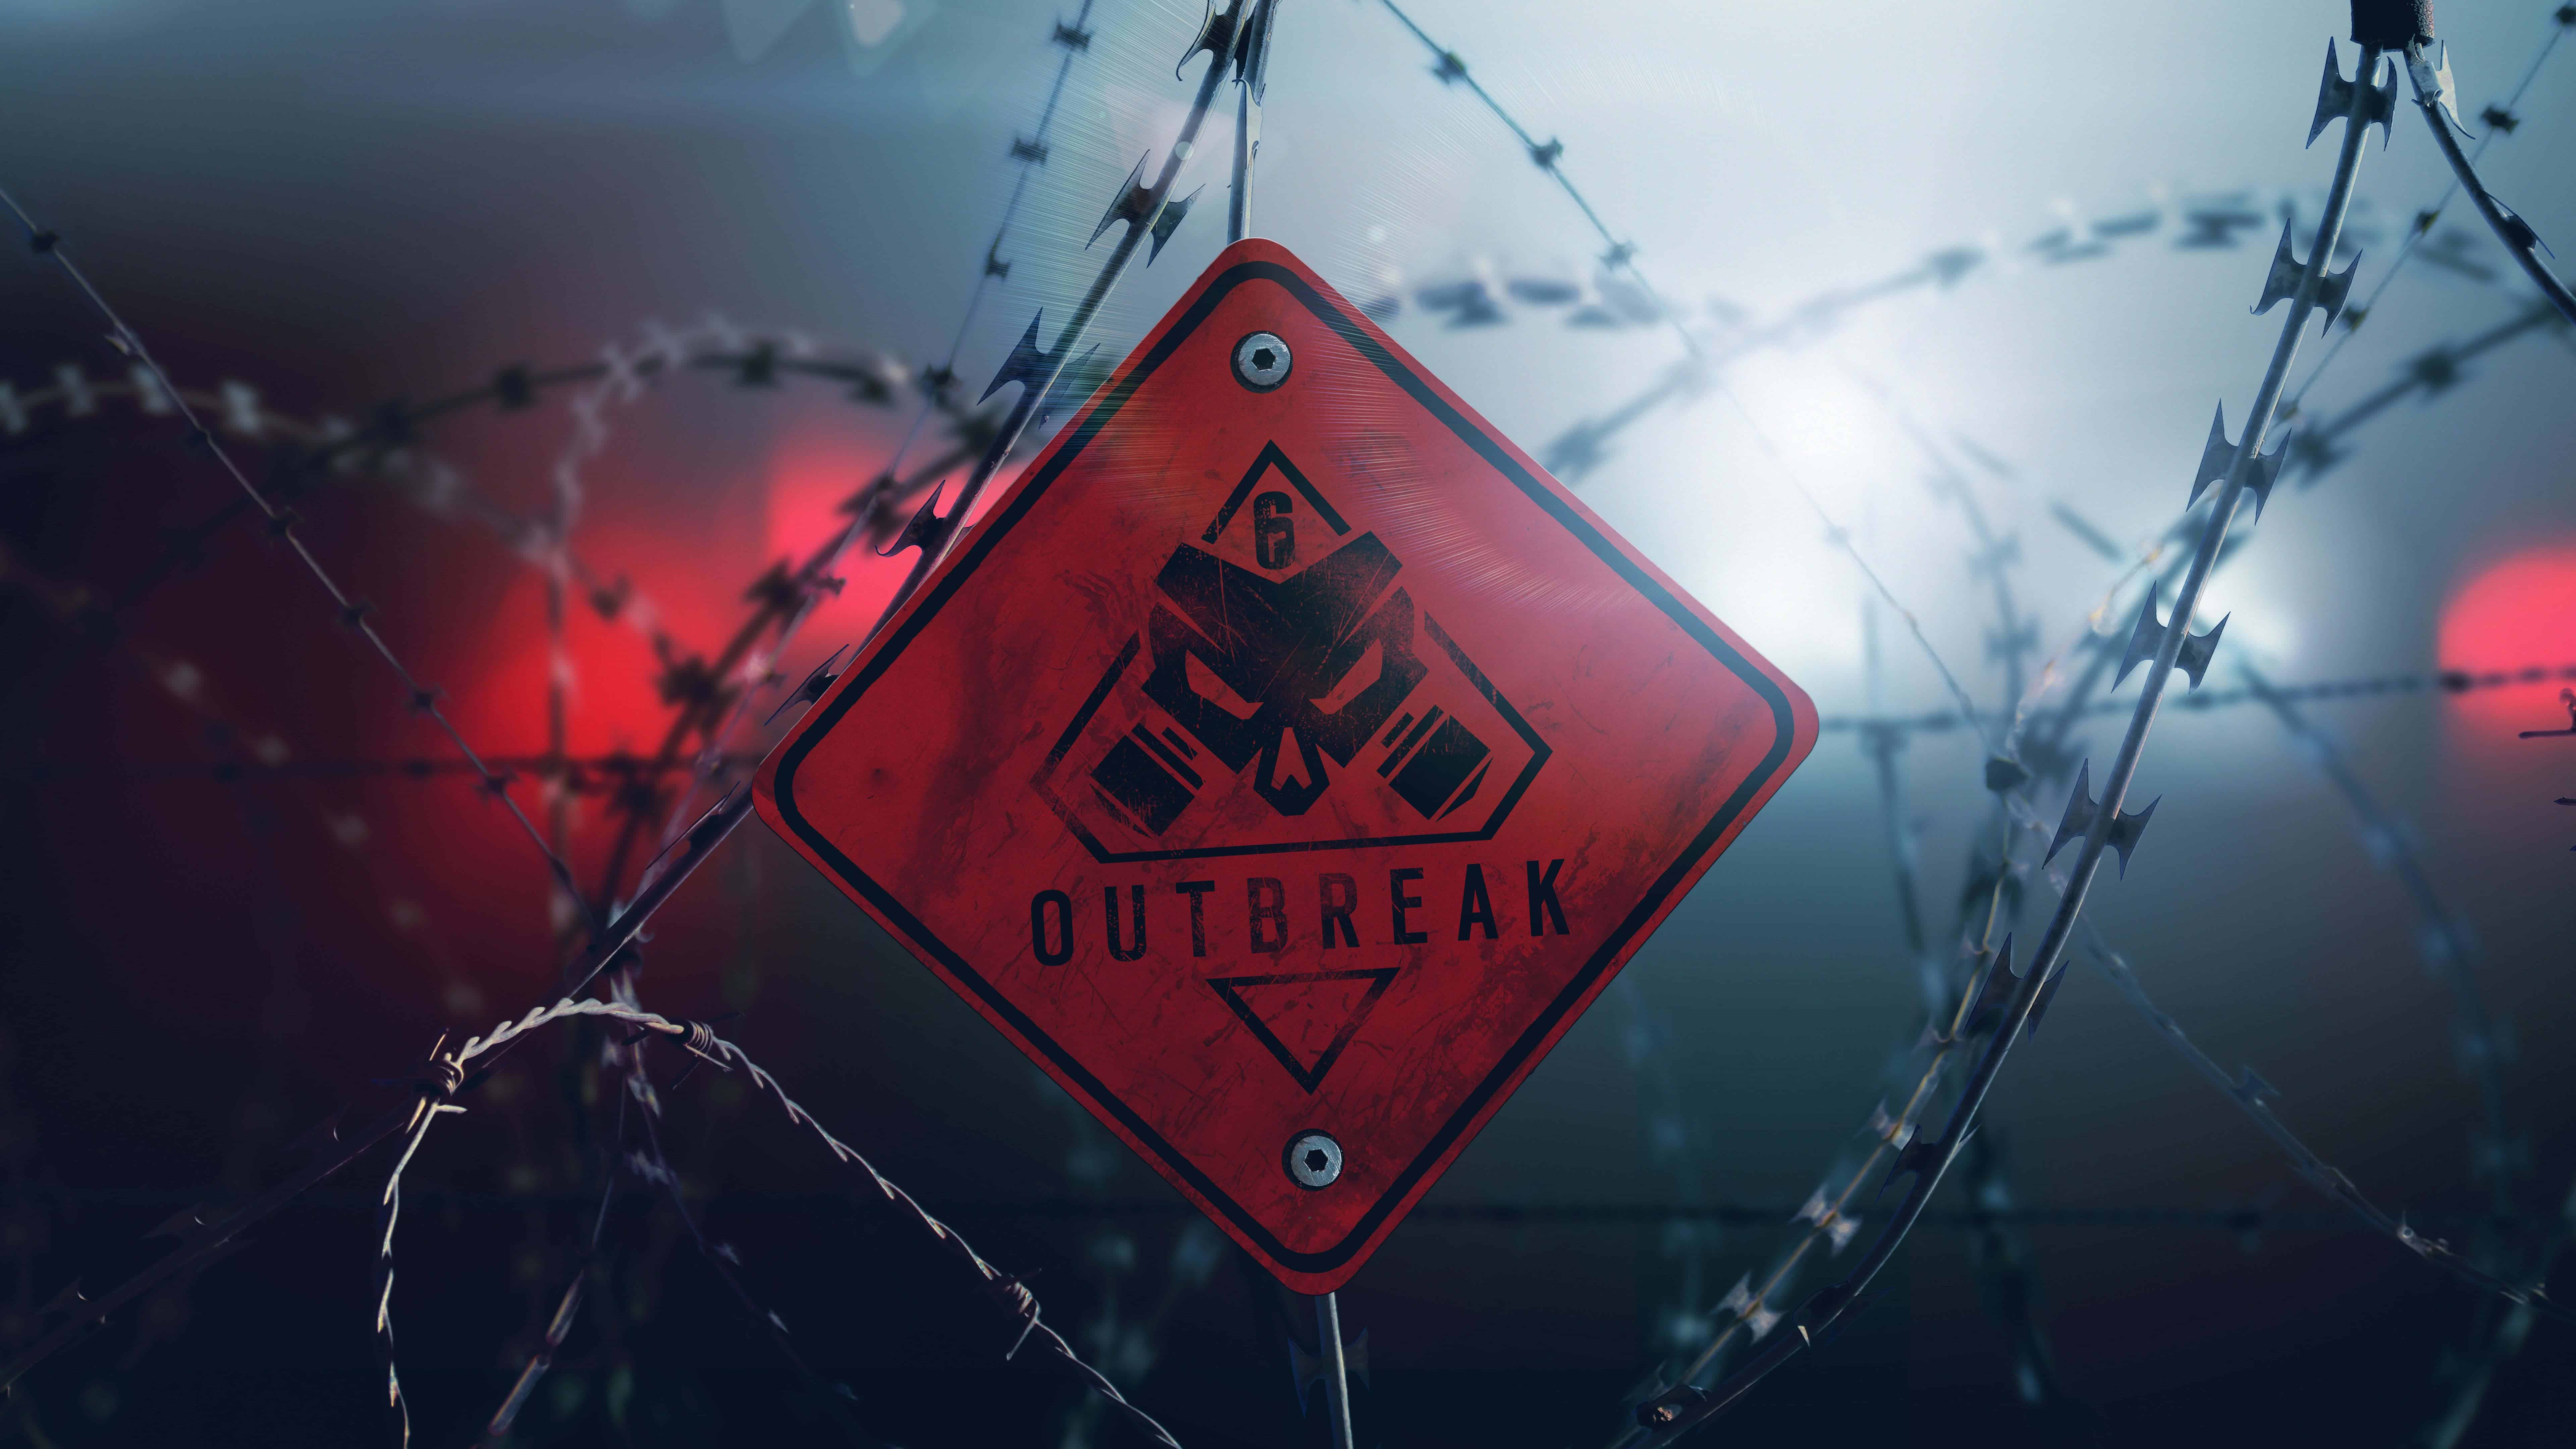 Download Cars Wallpapers For Mobile Rainbow Six Siege Outbreak Uhd 8k Wallpaper Pixelz